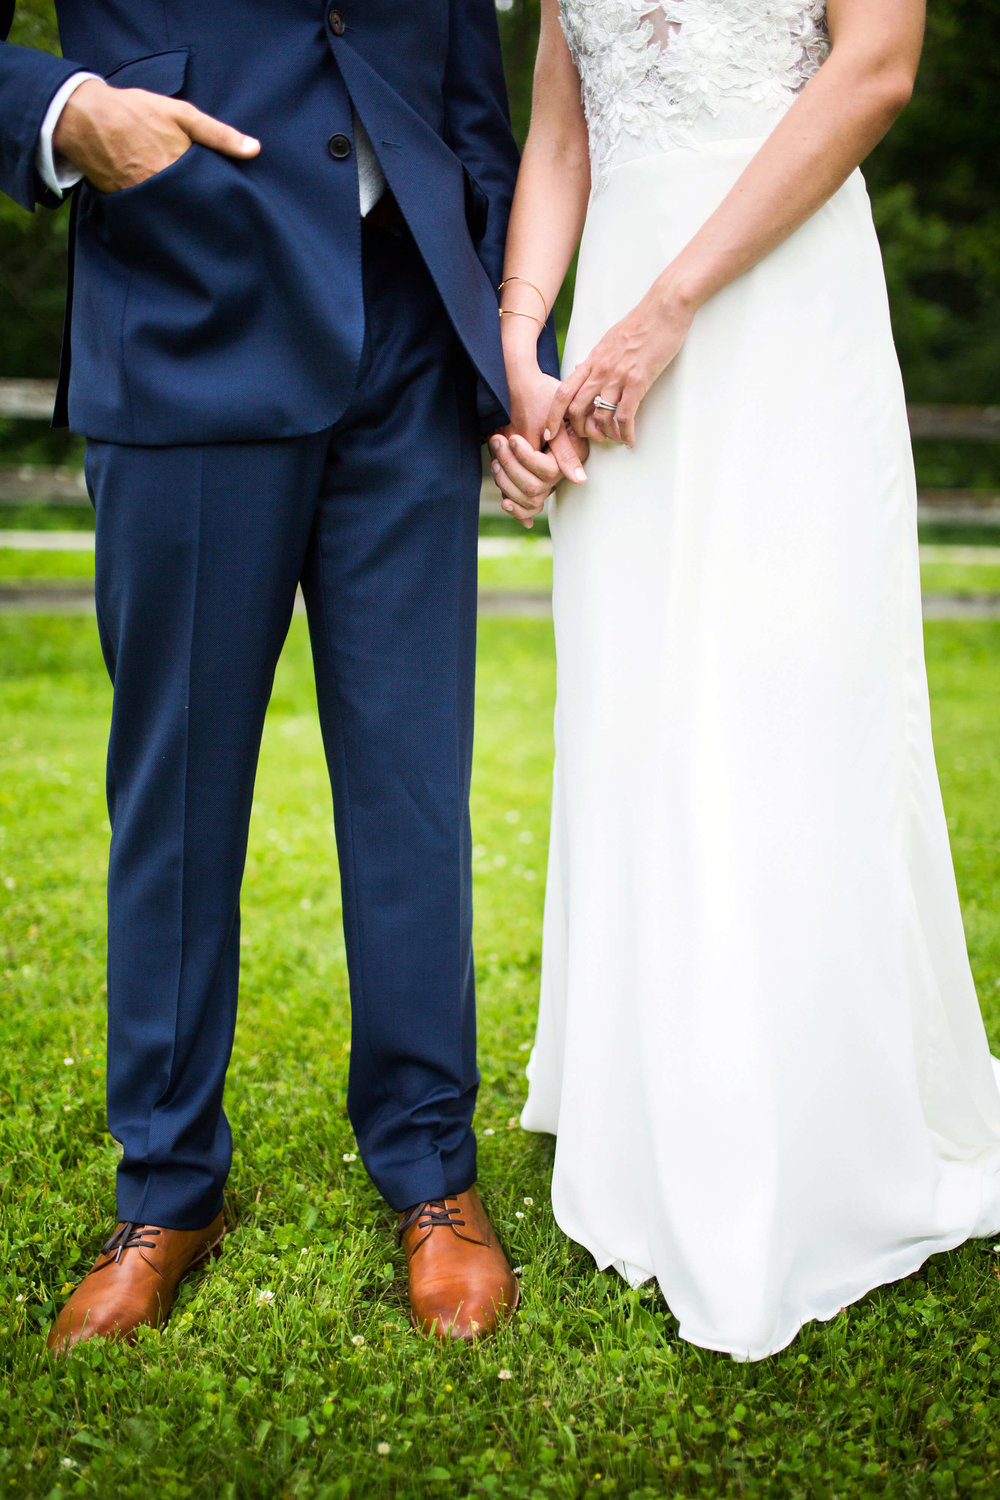 bride and groom holding hands | groom with hand in pocket | Minnesota wedding photographer Studio KH wedding dress details | wedding blog | Sixpence Events 70 Ways to Photograph Your Wedding Dress.jpg